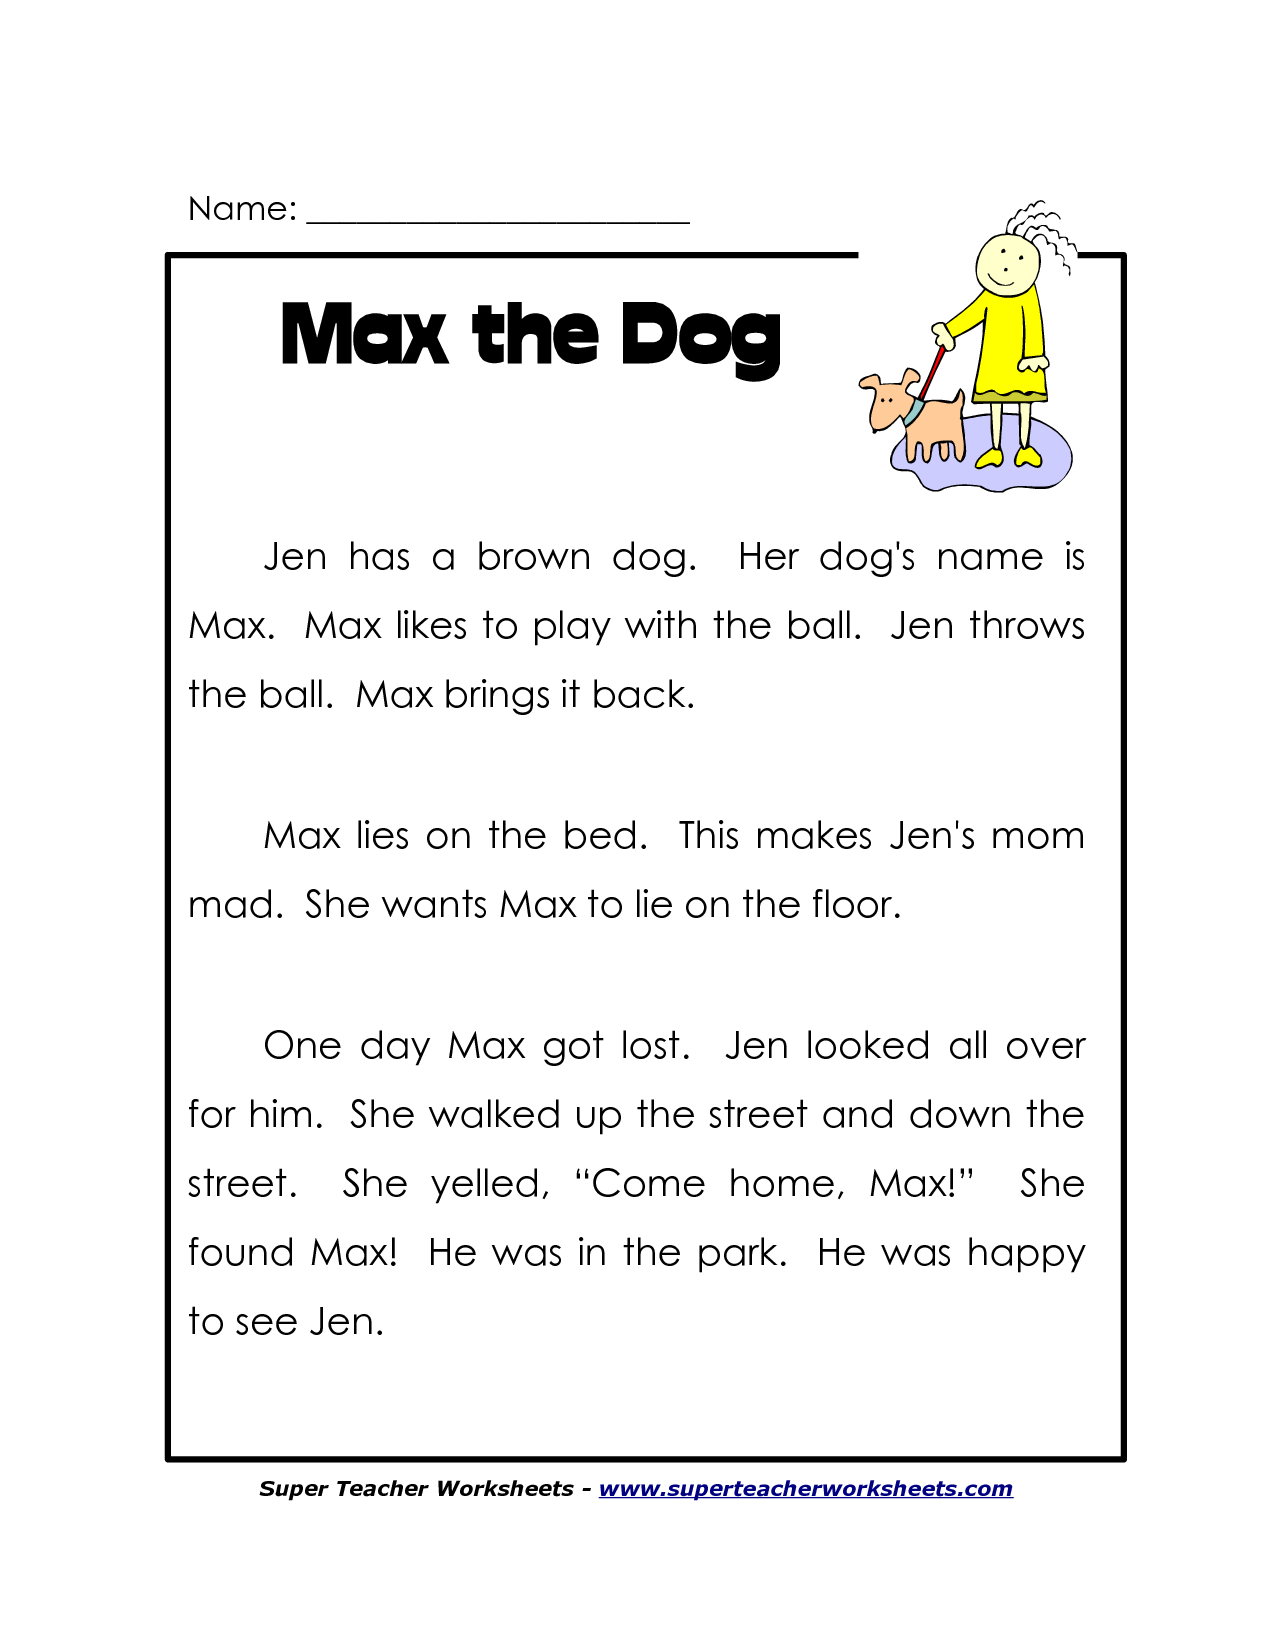 This is an image of Amazing Printable 2nd Grade Reading Worksheets